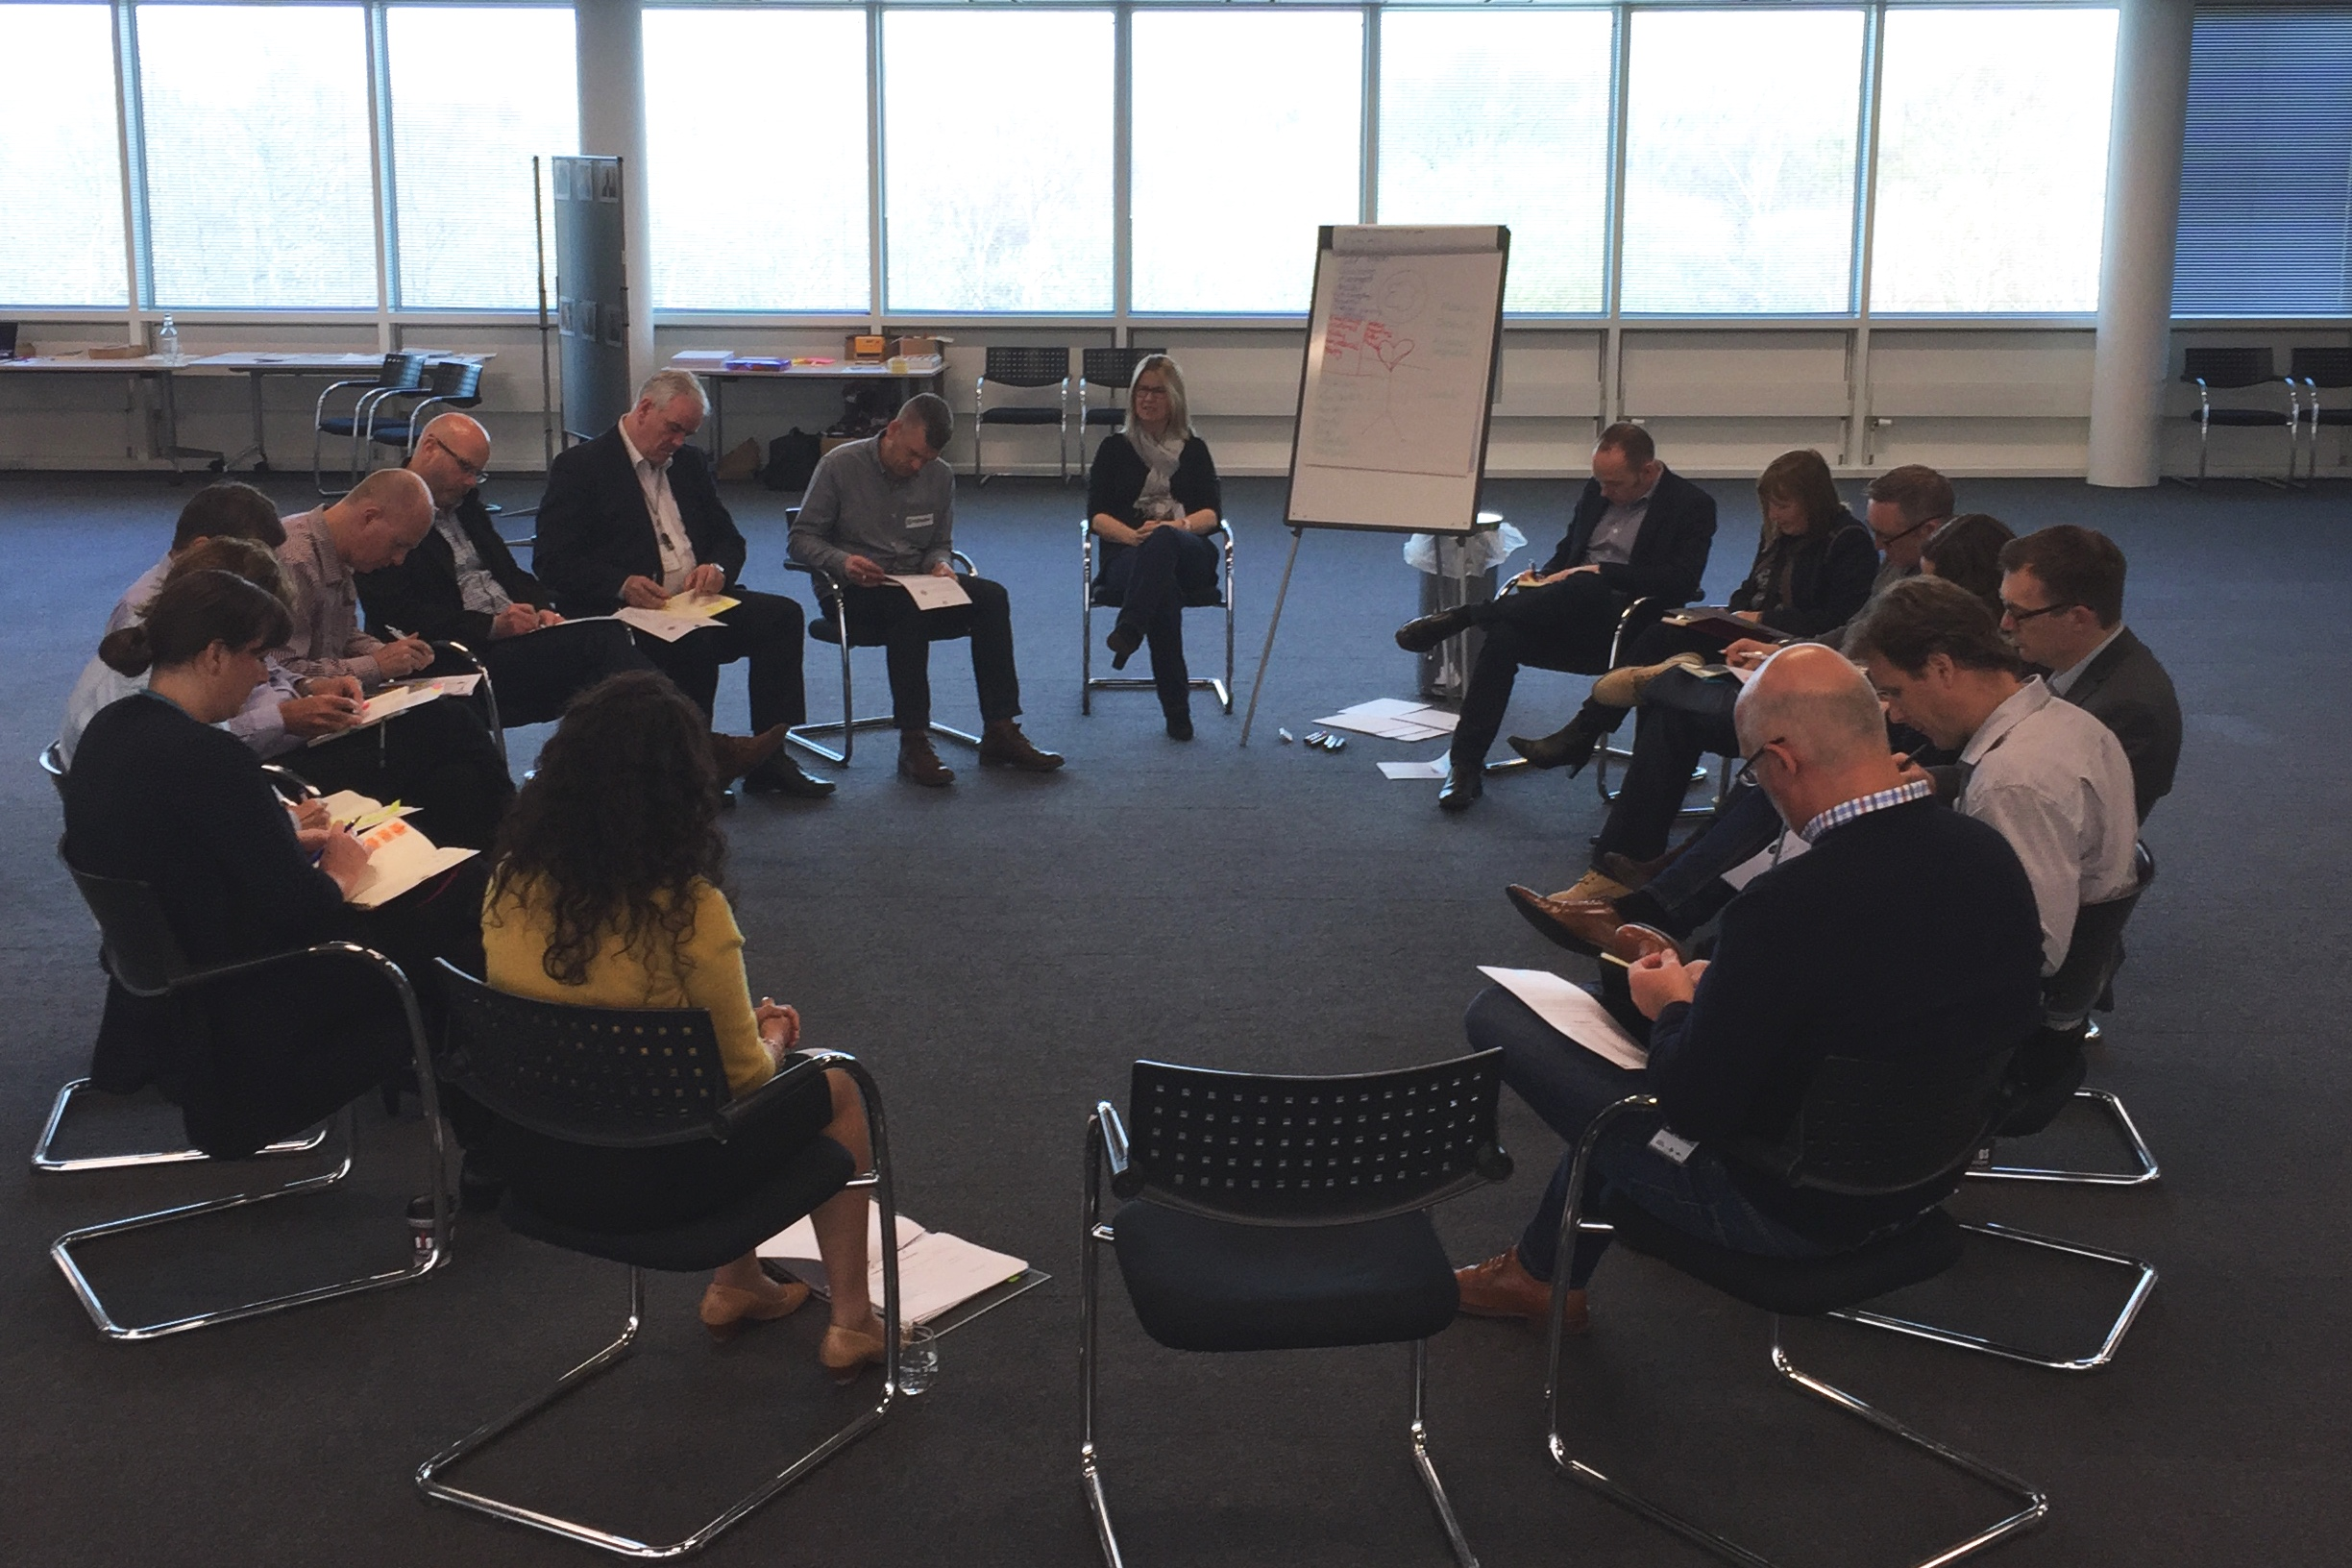 """A leadership group at BMW (UK), shaping their leadership philosophies. Part of company-wide culture development. """"What sort of leader do I want to be?"""""""